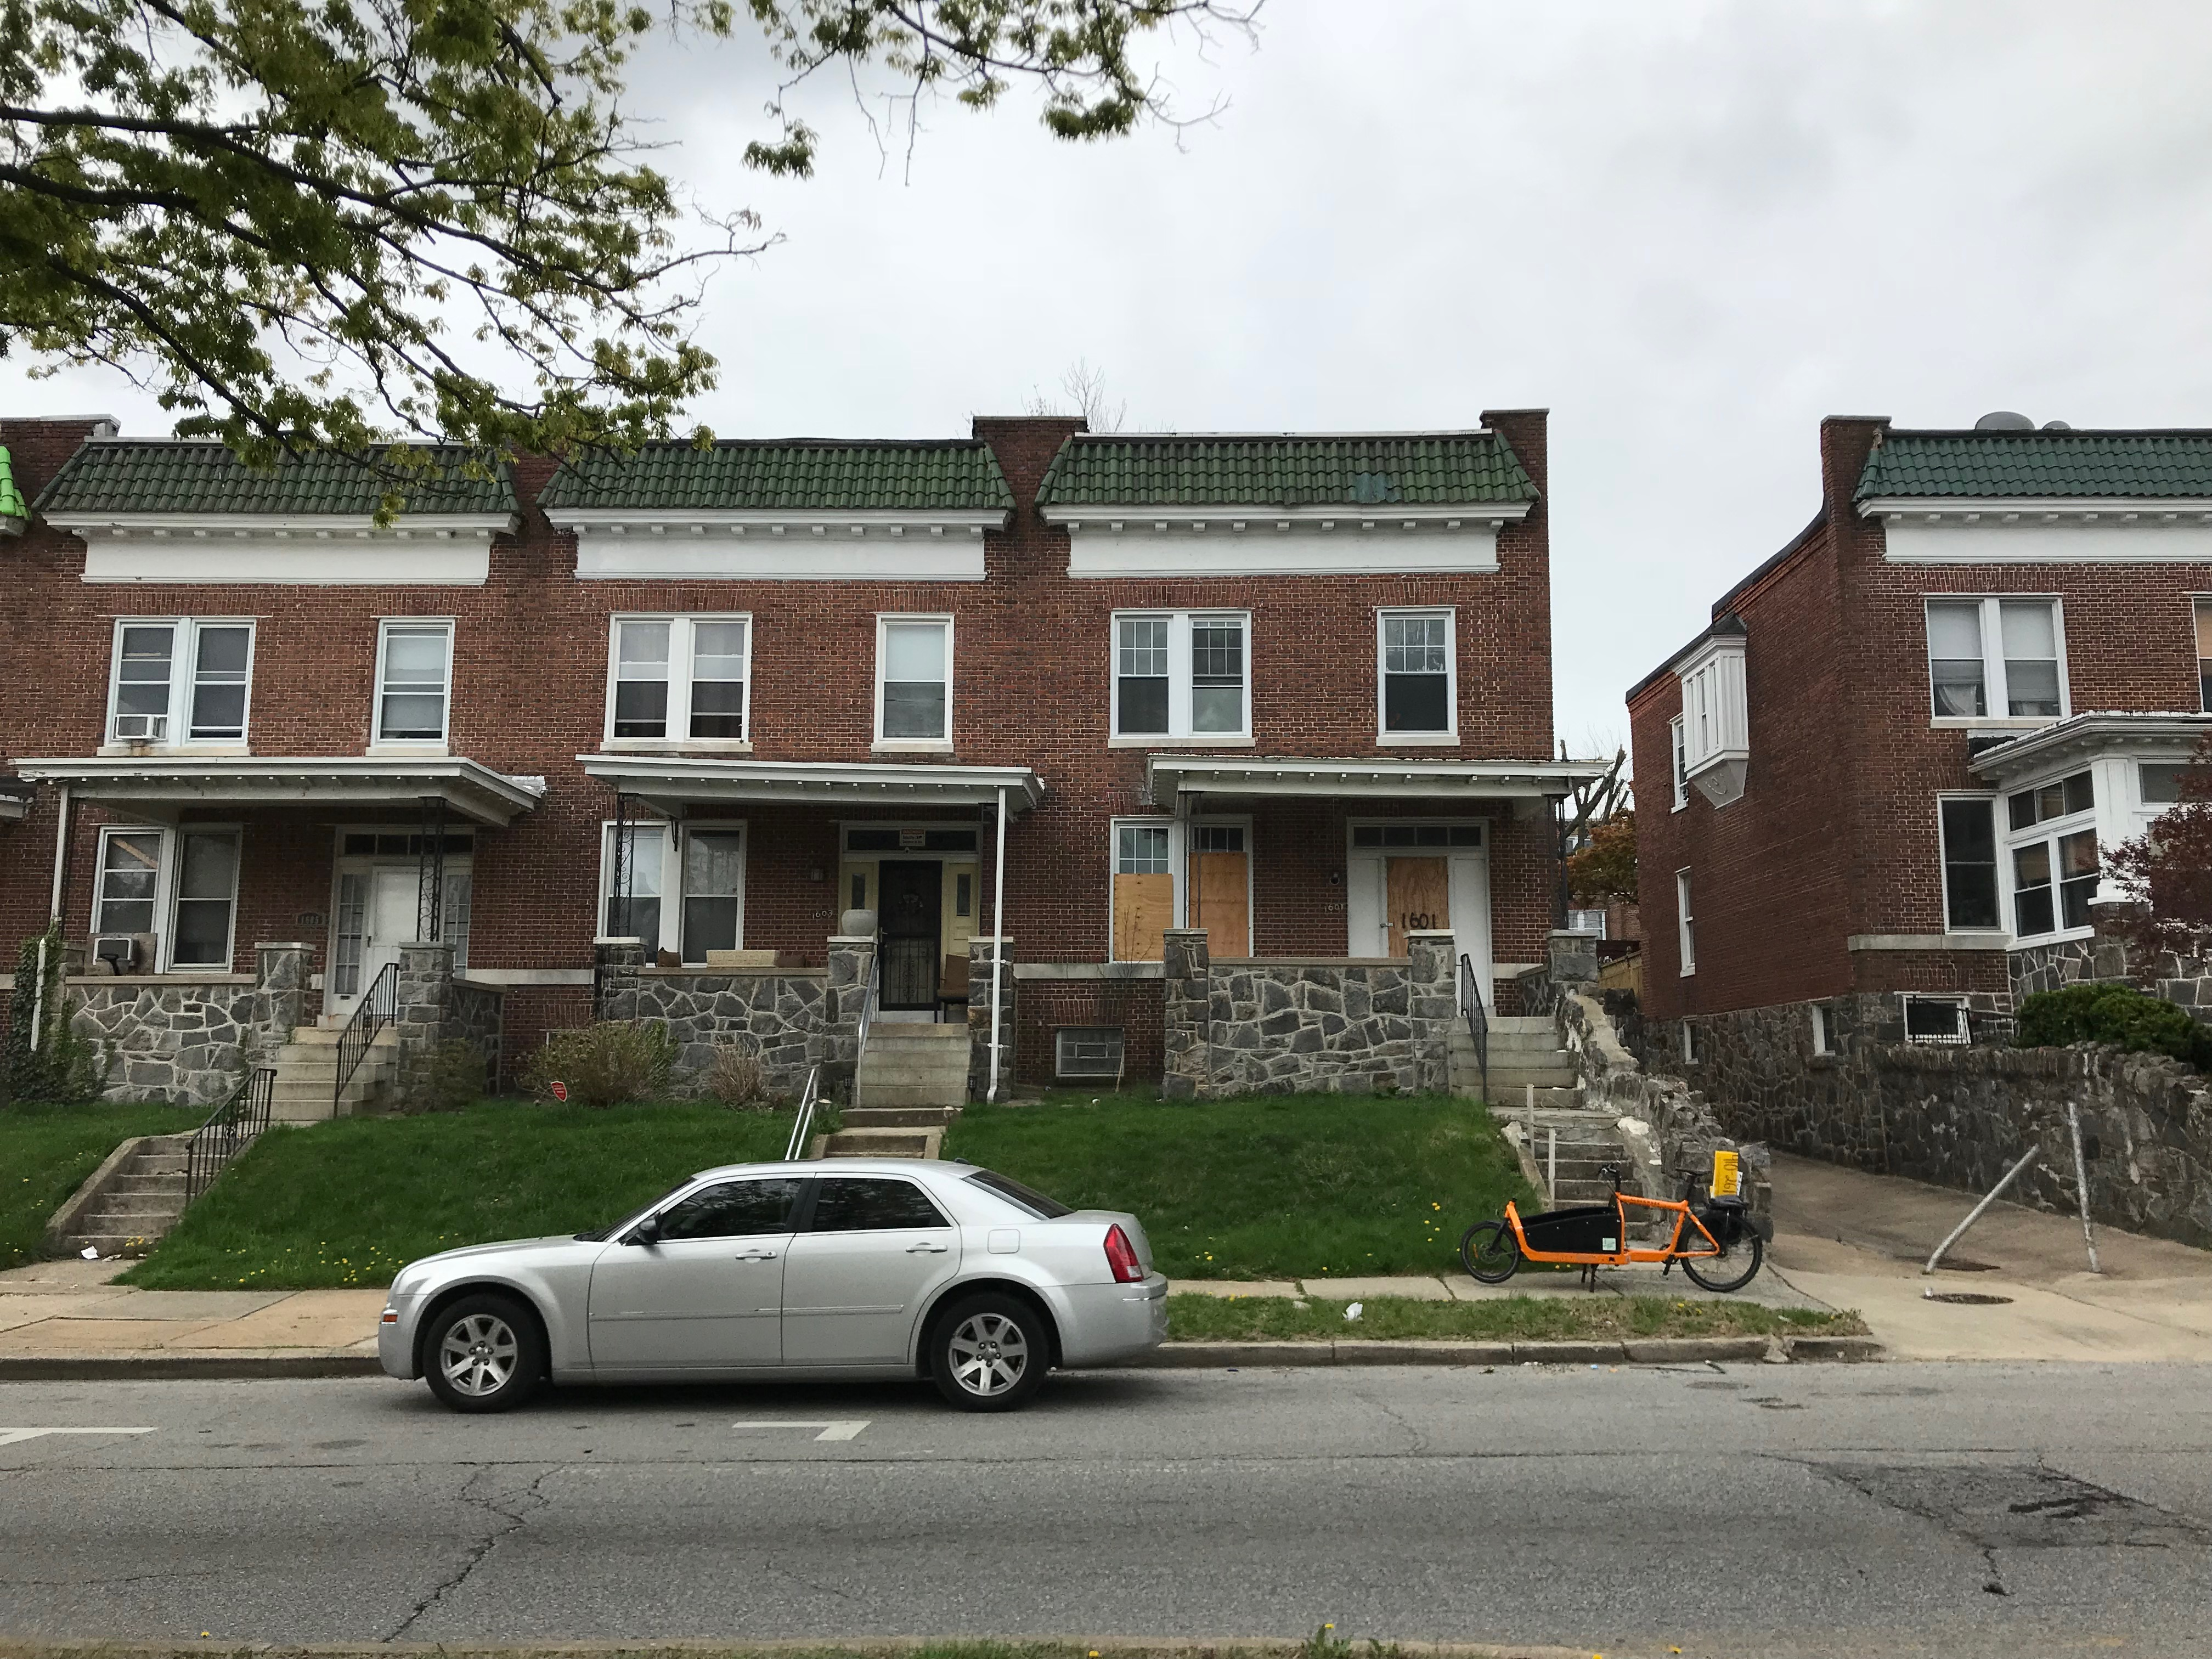 Rowhouses, 1601-1605 e. 33rd street, baltimore, md 21218 photo